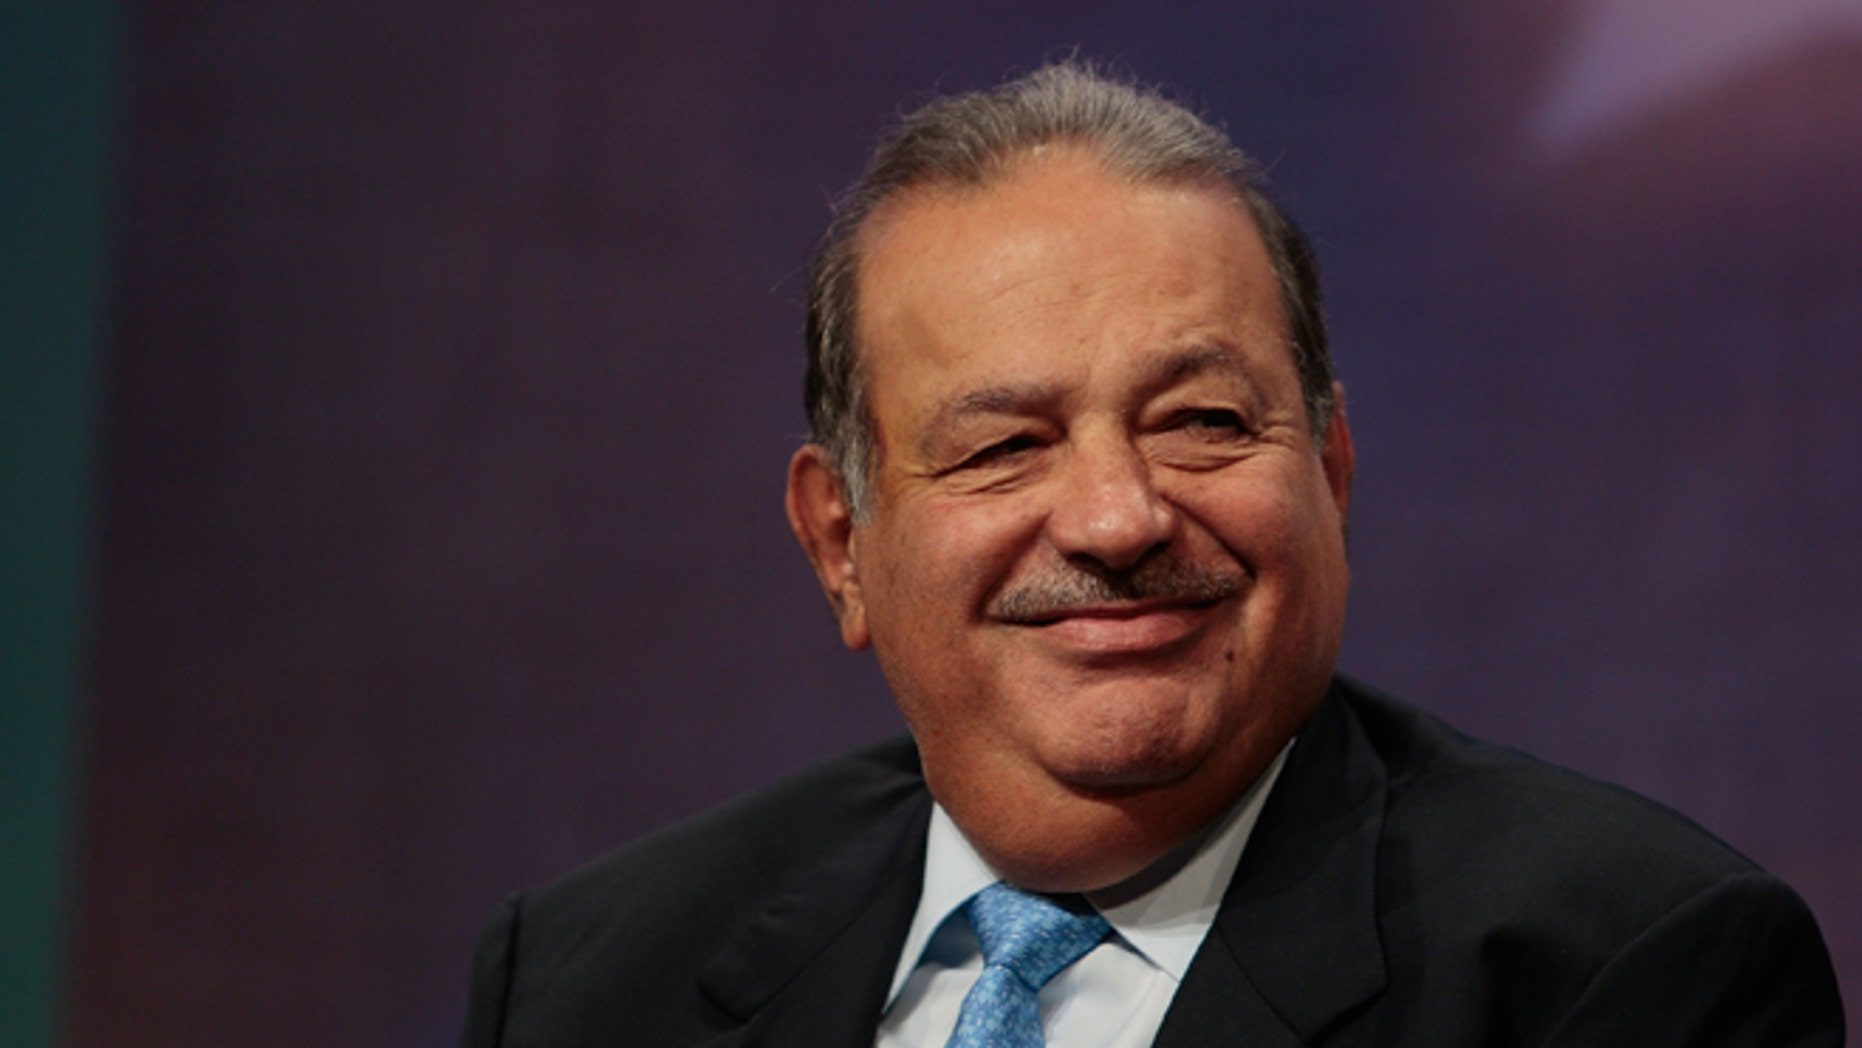 Mexican businessman Carlos Slim Helu, one of the world's richest men.